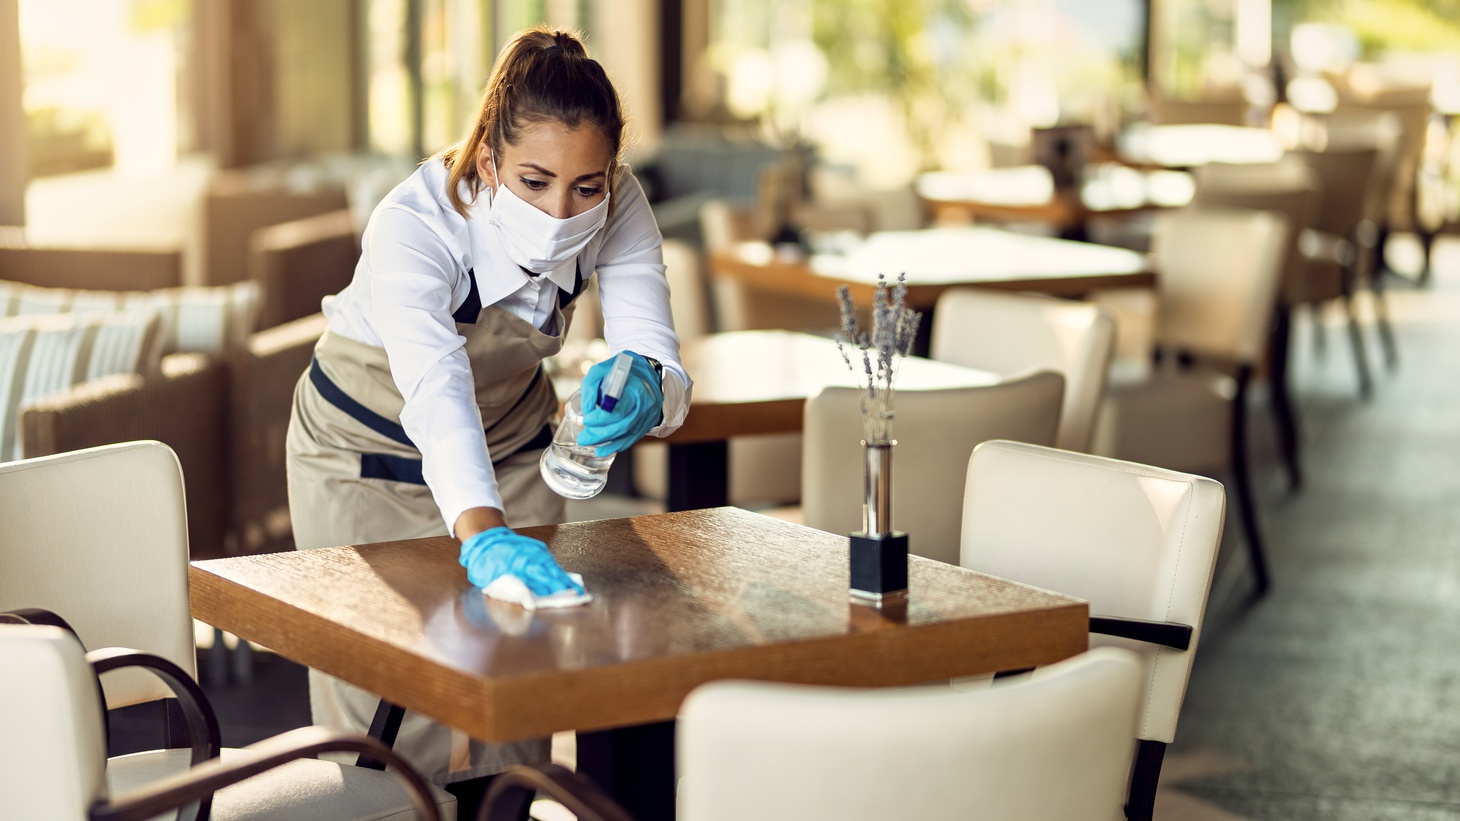 Starting October 11, you must show proof of vaccination to eat indoors at a restaurant within West Hollywood city limits. Restaurant staff must be fully vaccinated by November 1.